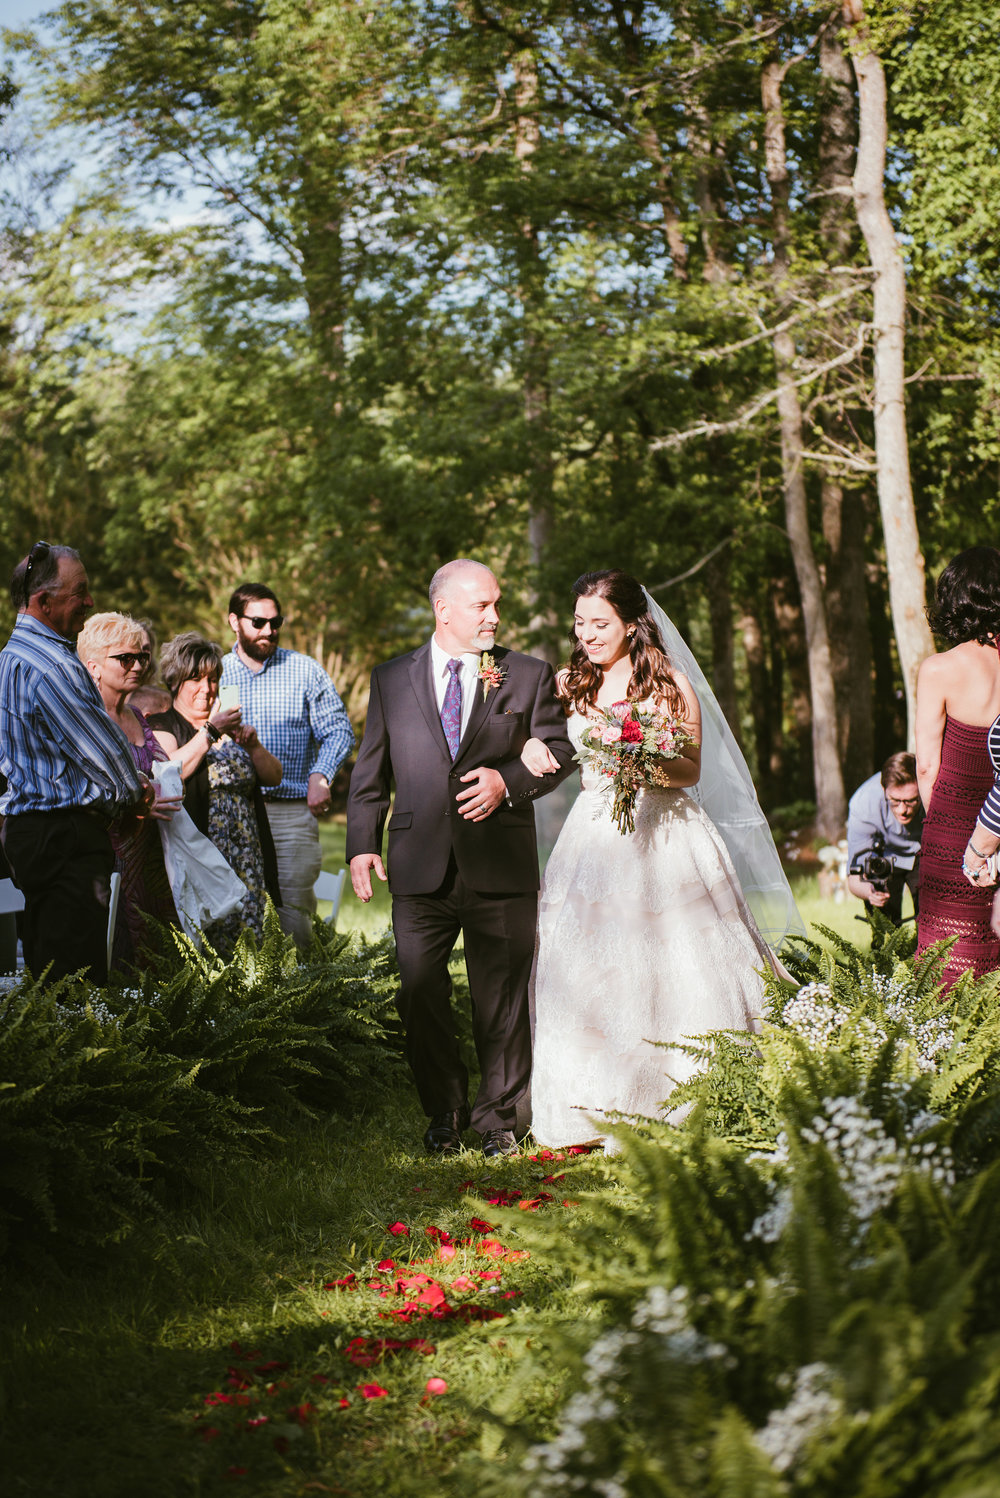 Raleigh Wedding Photographer - Backyard Wedding - North Carolina Wedding Photographer